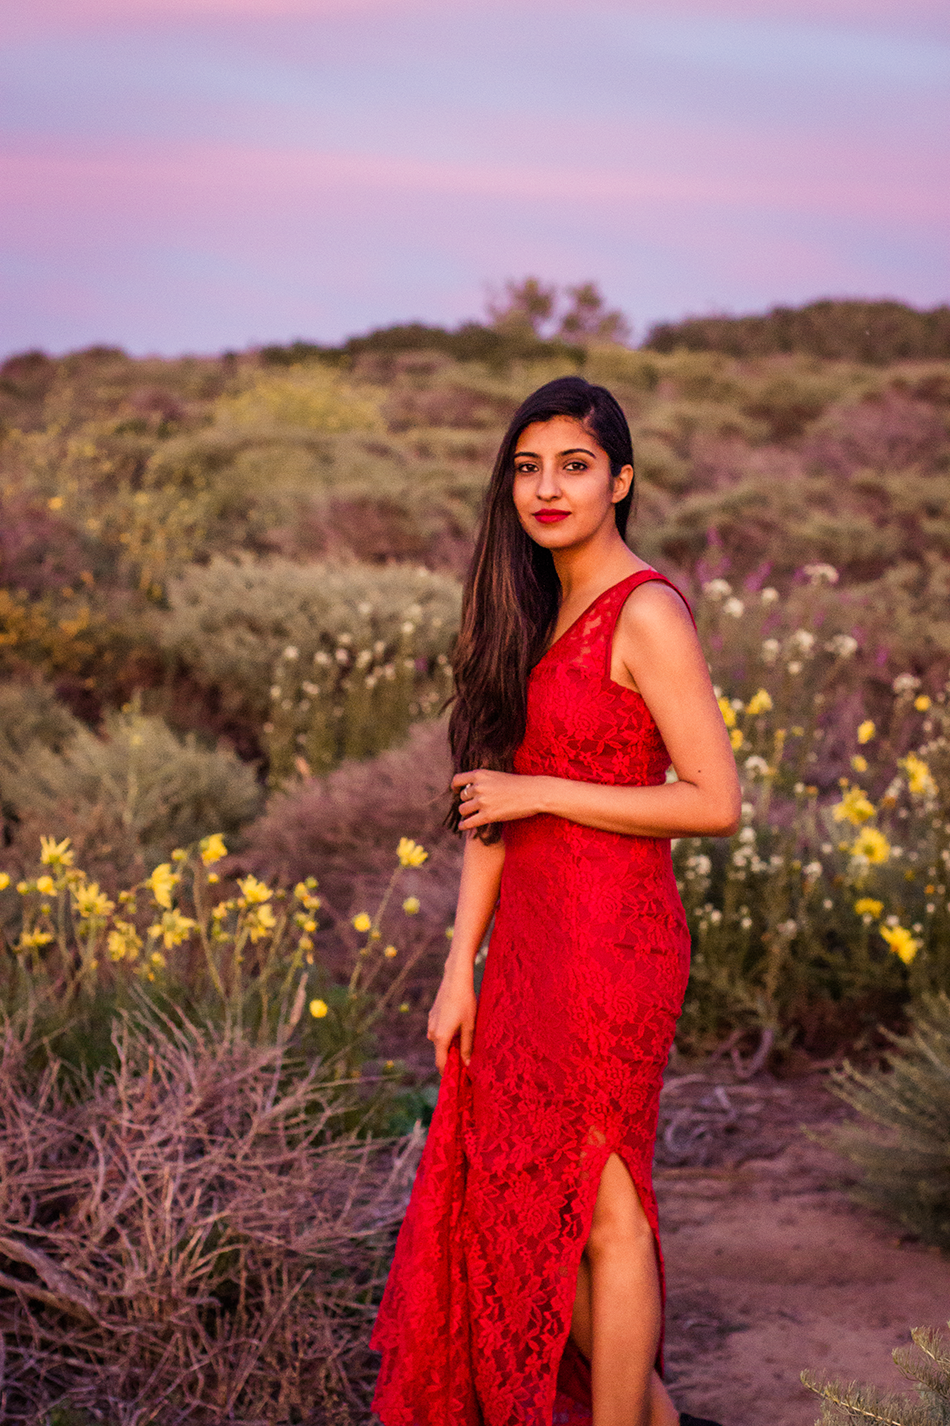 red-lace-maxi-dress-summer-beach-outfit-la-jolla-san-diego 4